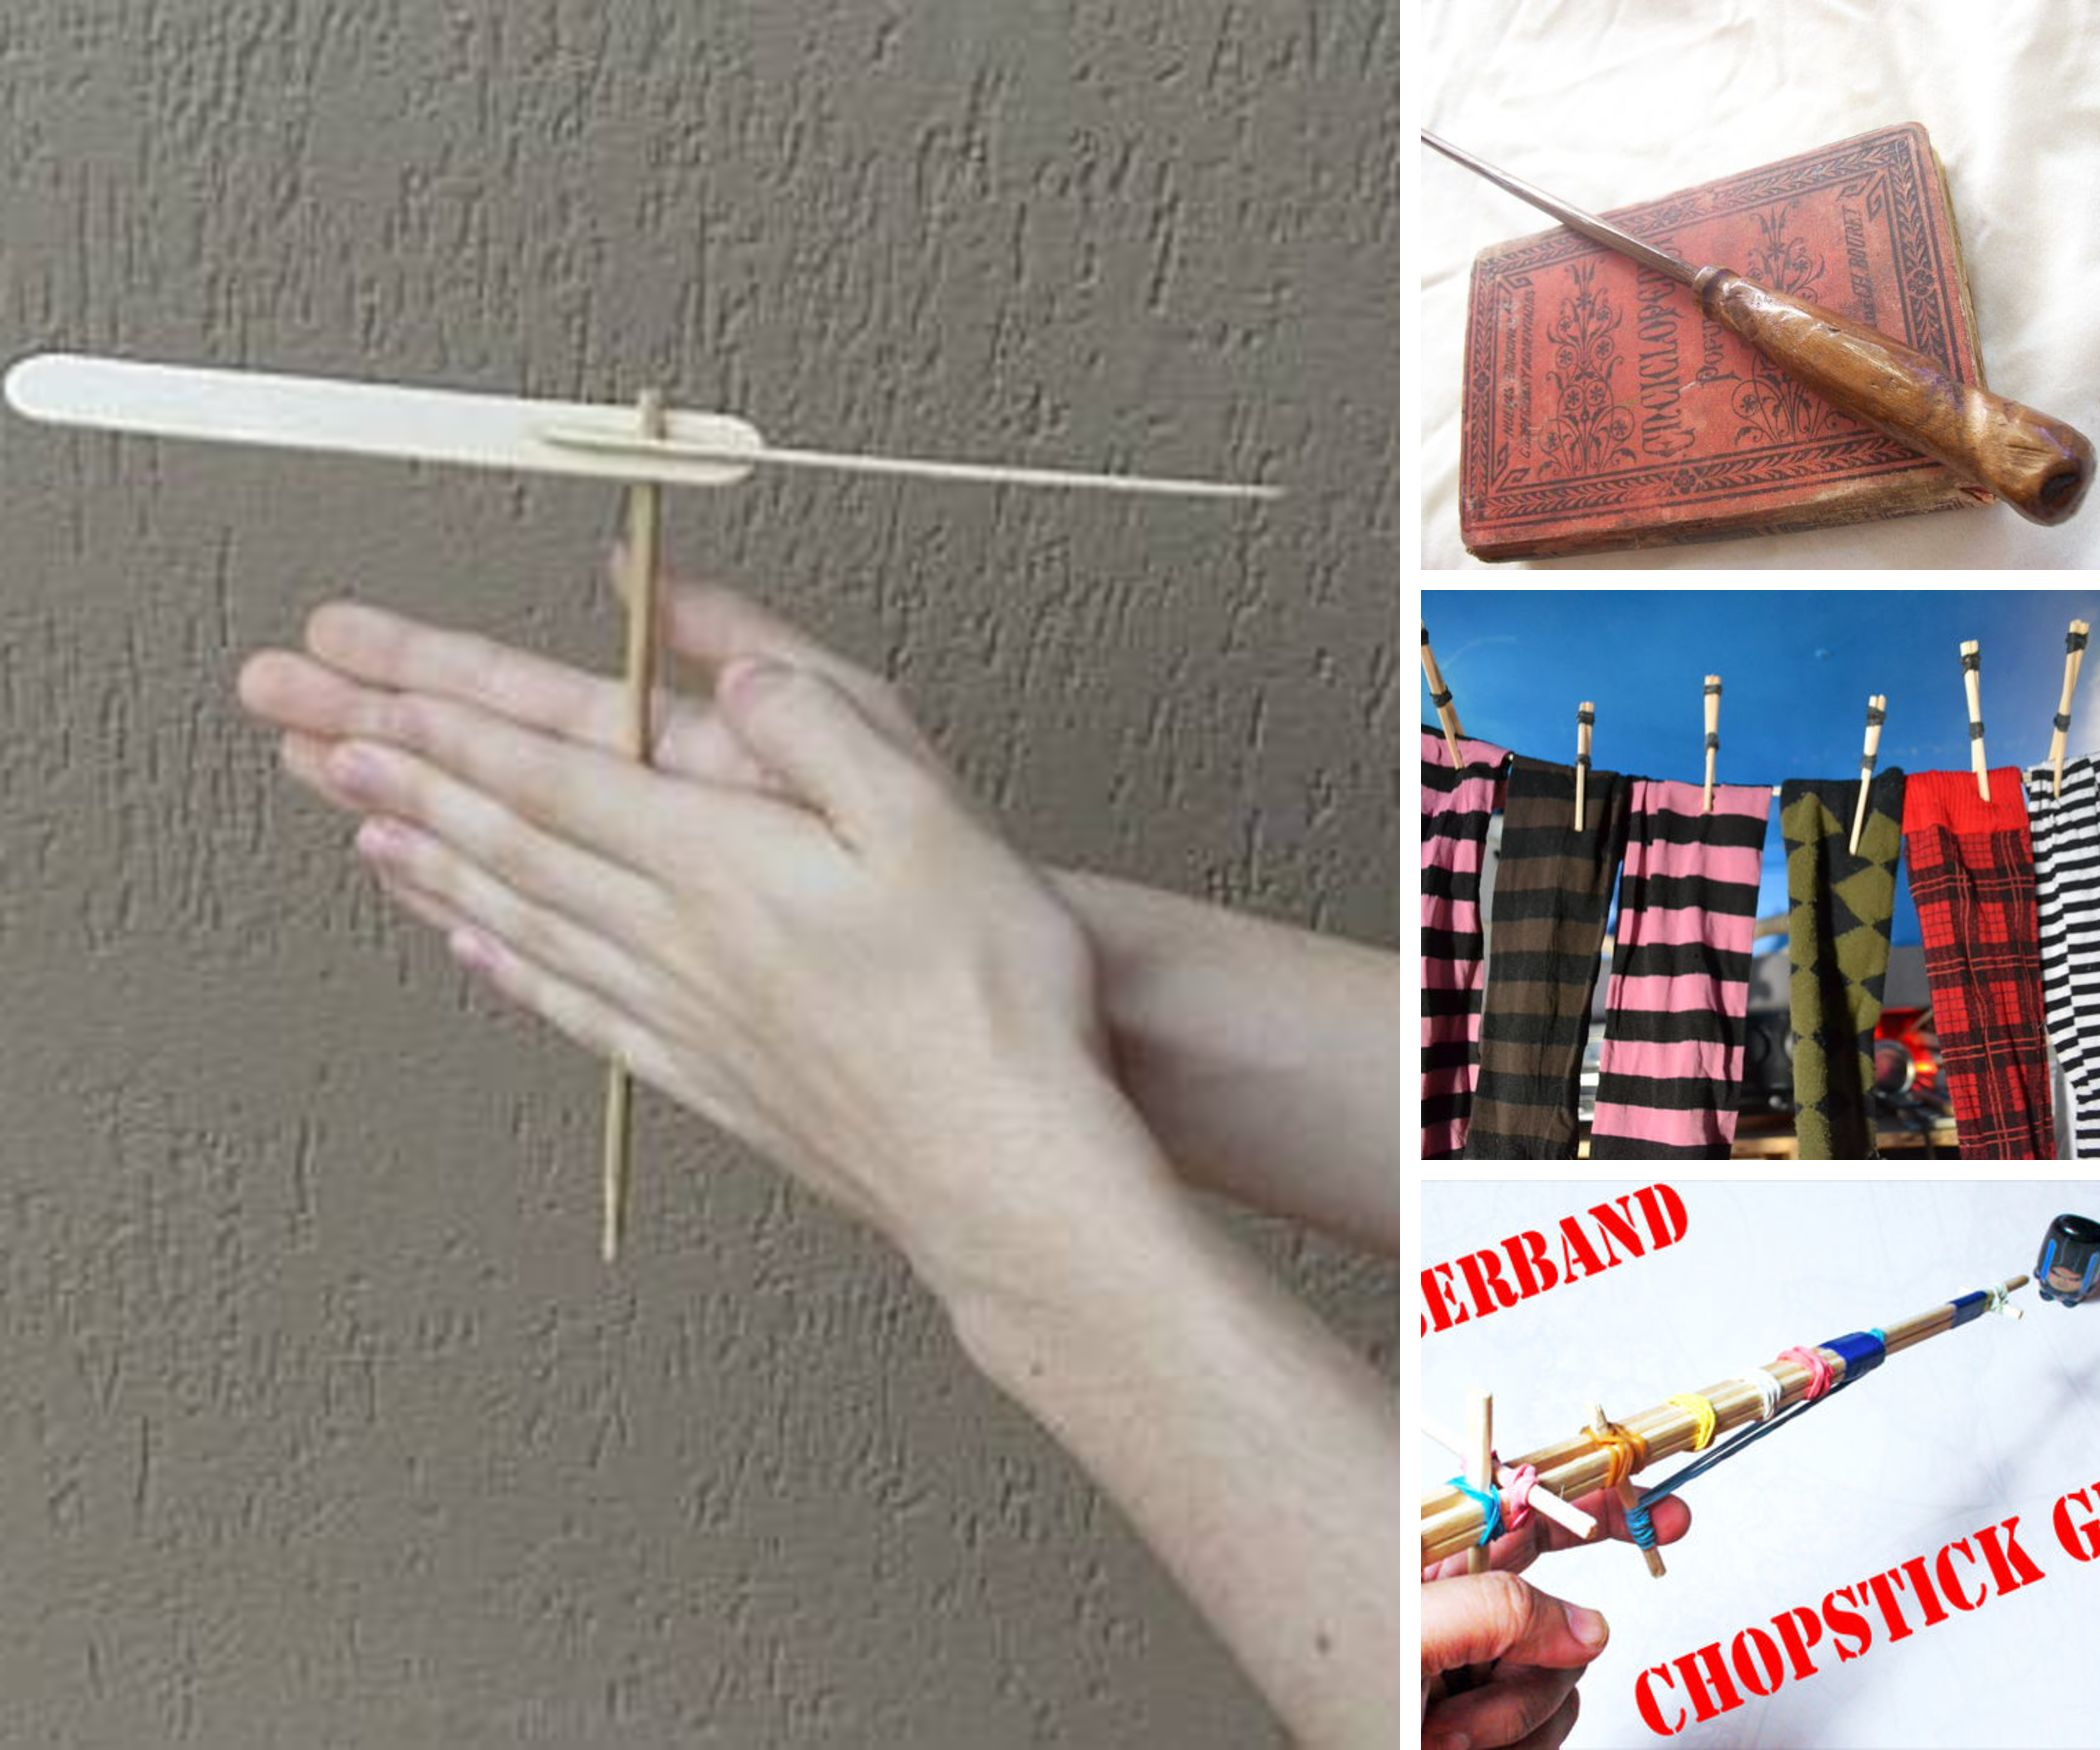 20 Unusual Uses for Chopsticks